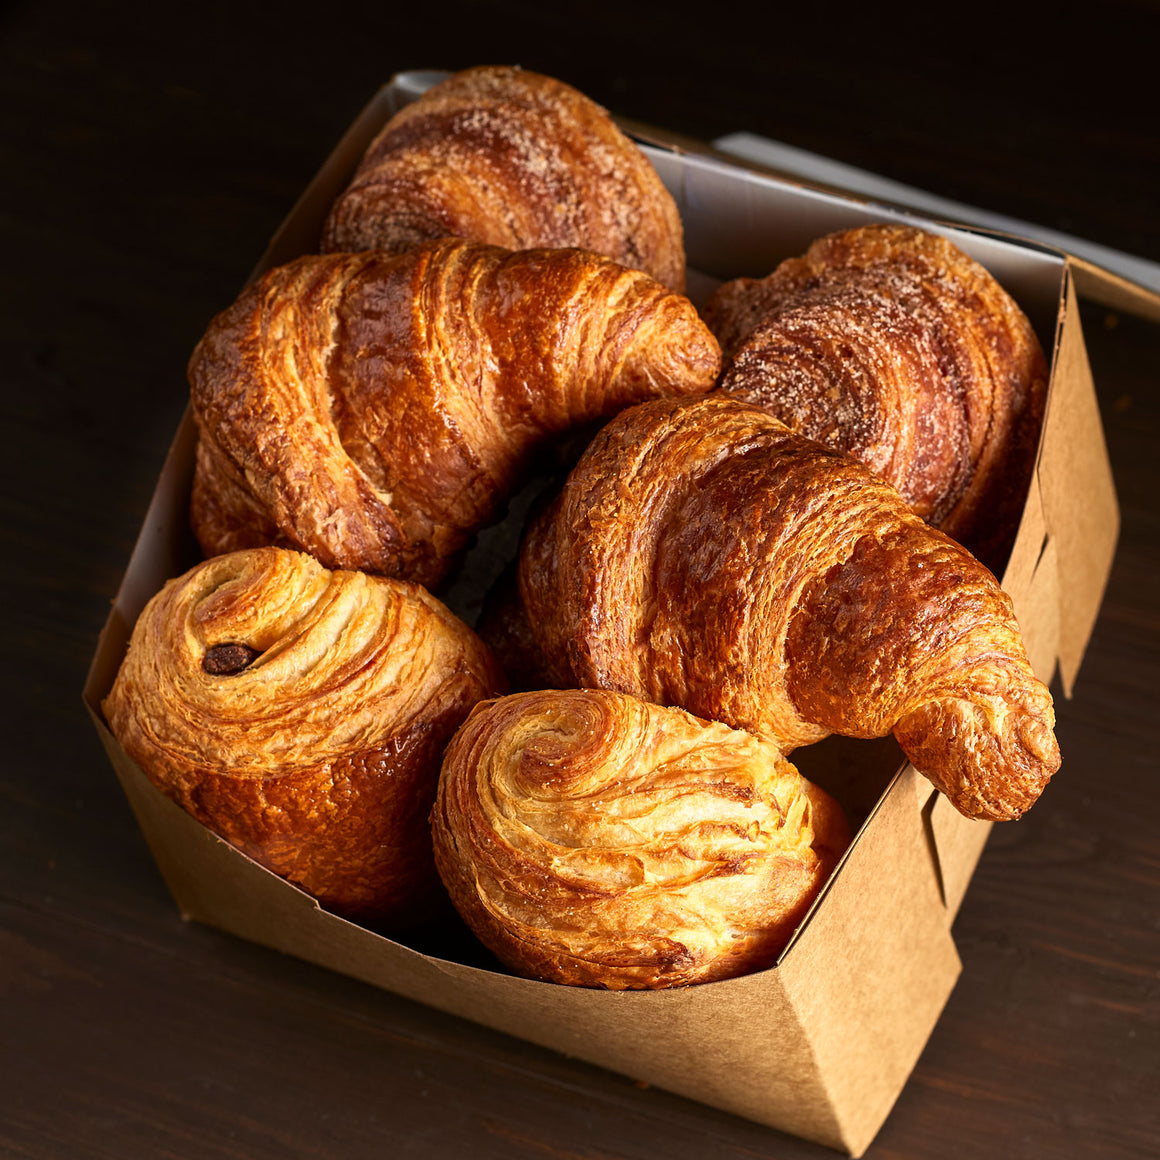 Box of Assorted Pastries